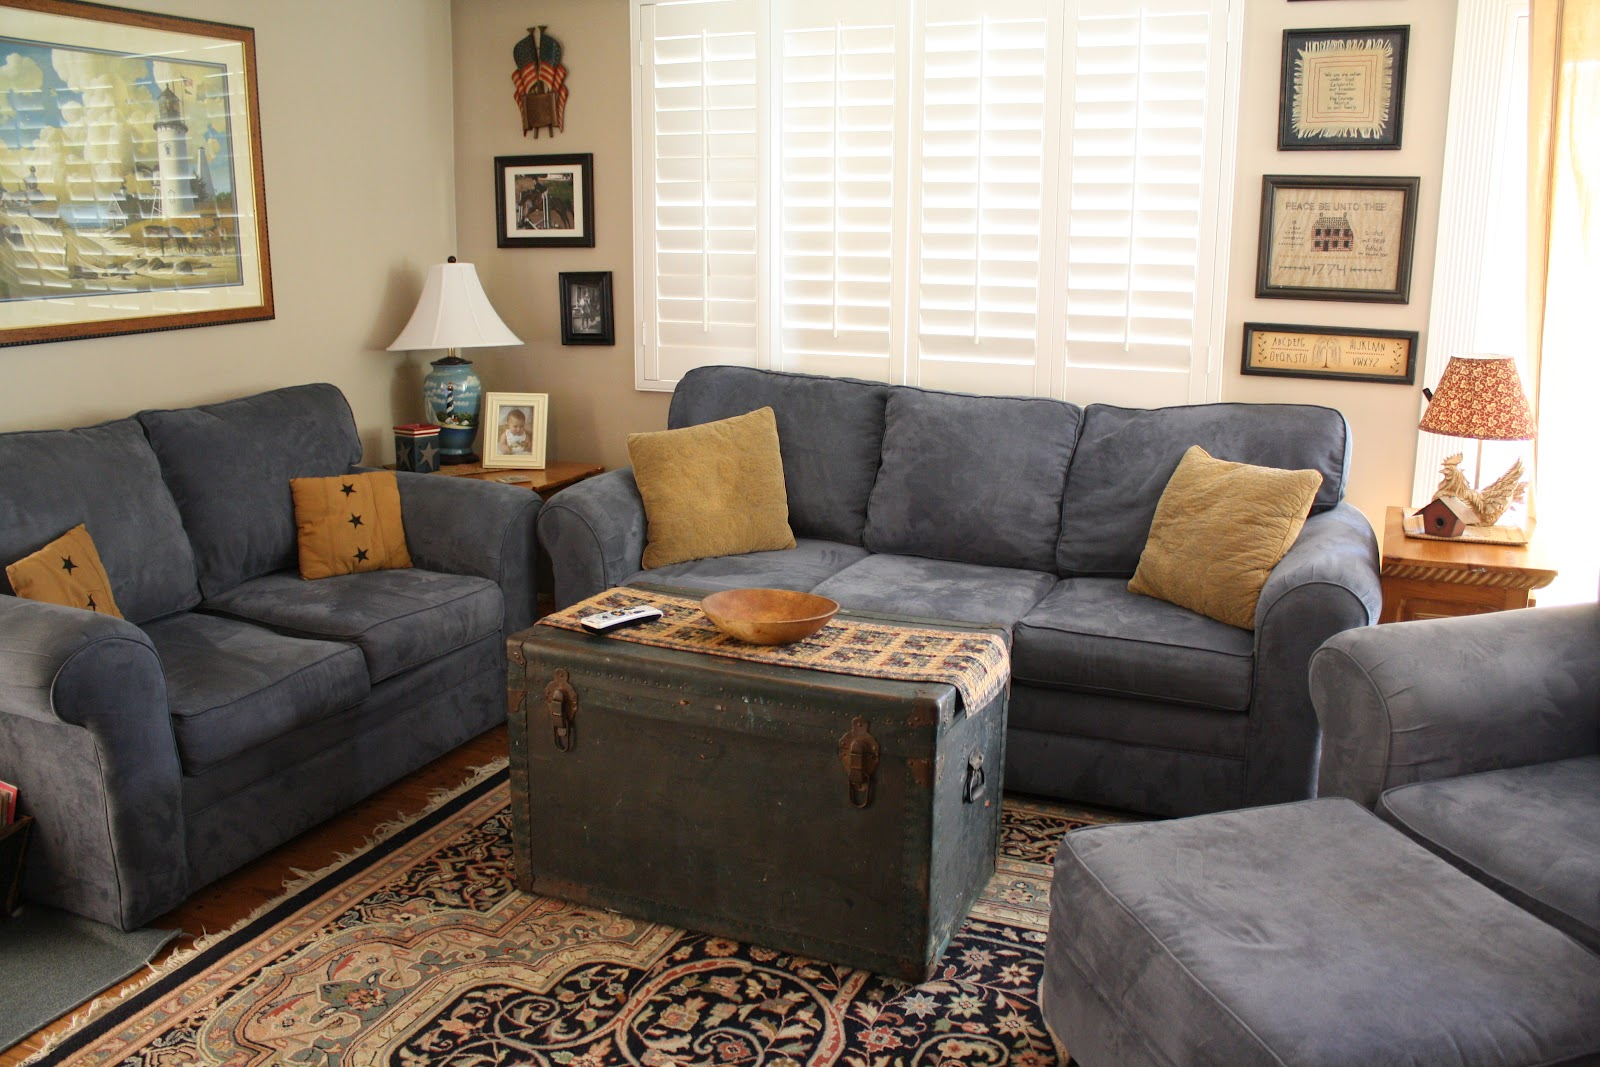 Refilling Sofa Cushions And Loveseat Covers Sunny Simple Life How To Refill Couch Cheaply